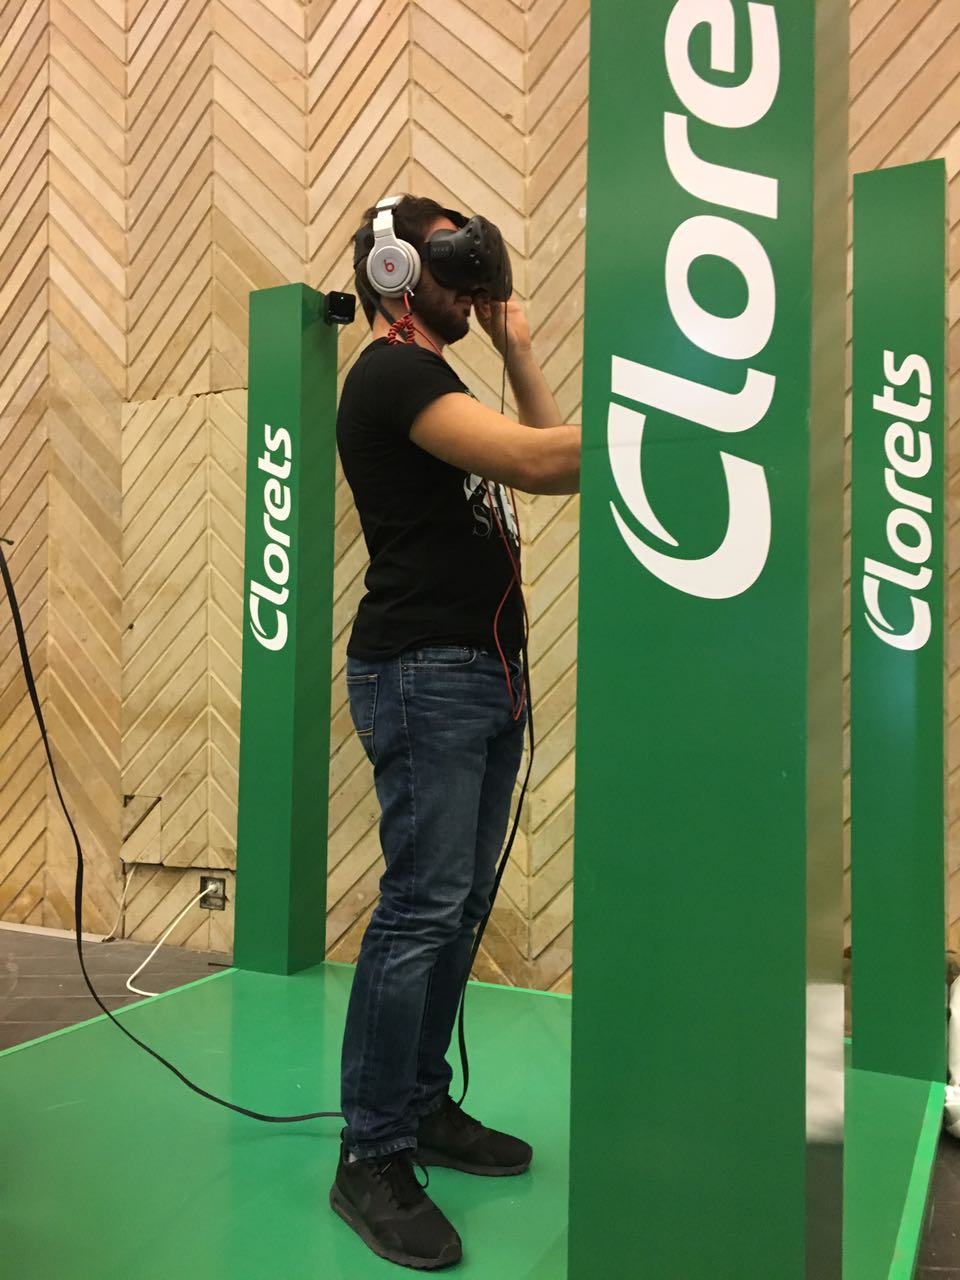 Clorets<strong>VR Game</strong>